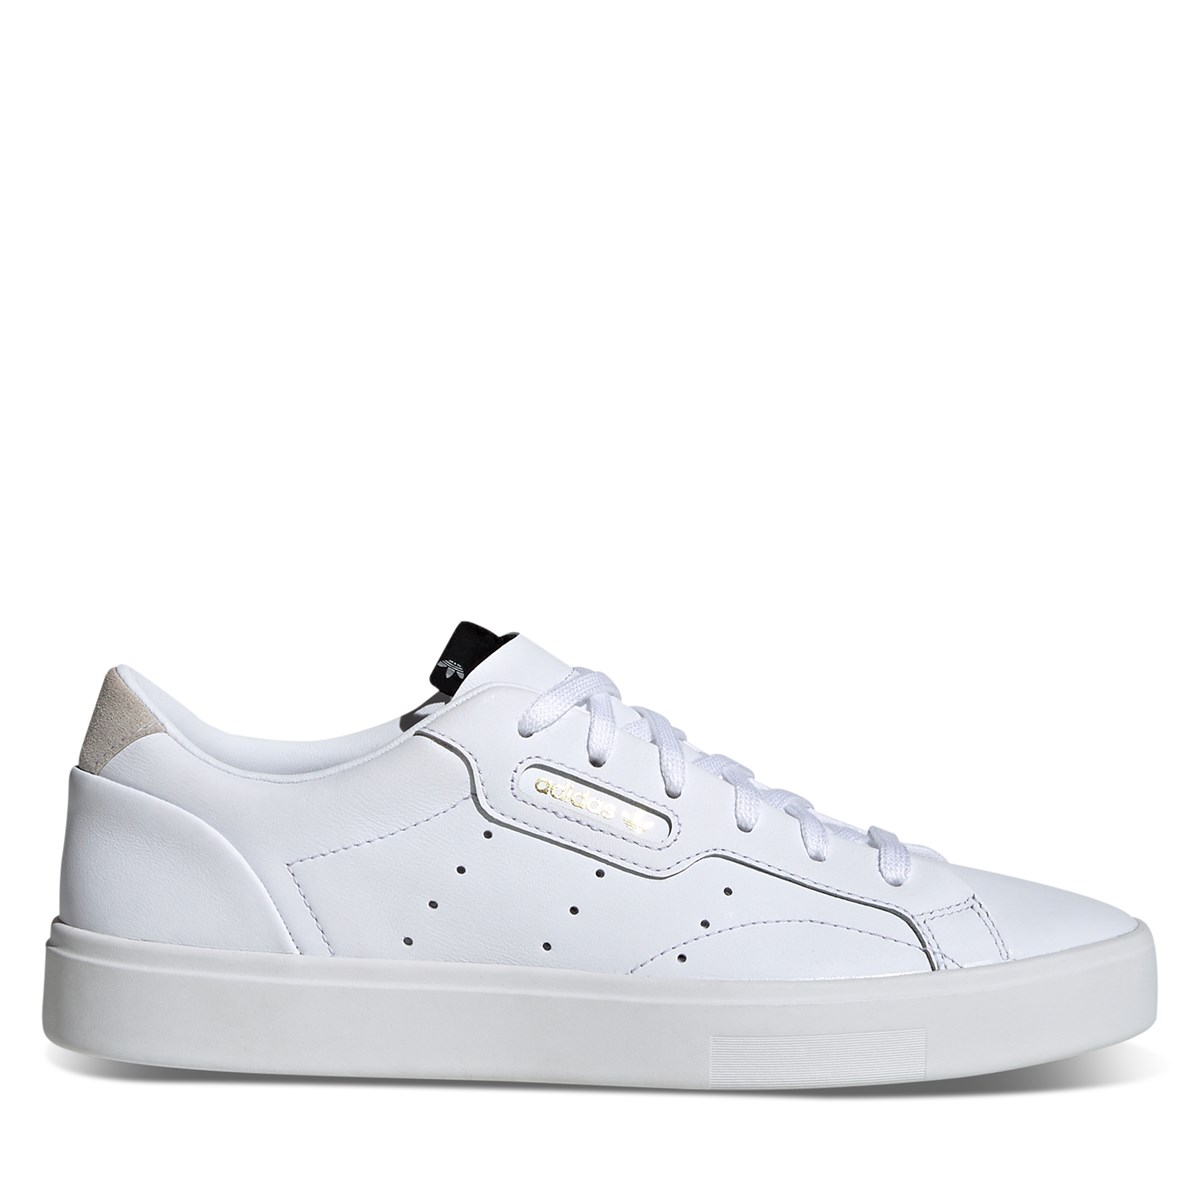 Women's Sleek Sneakers in White